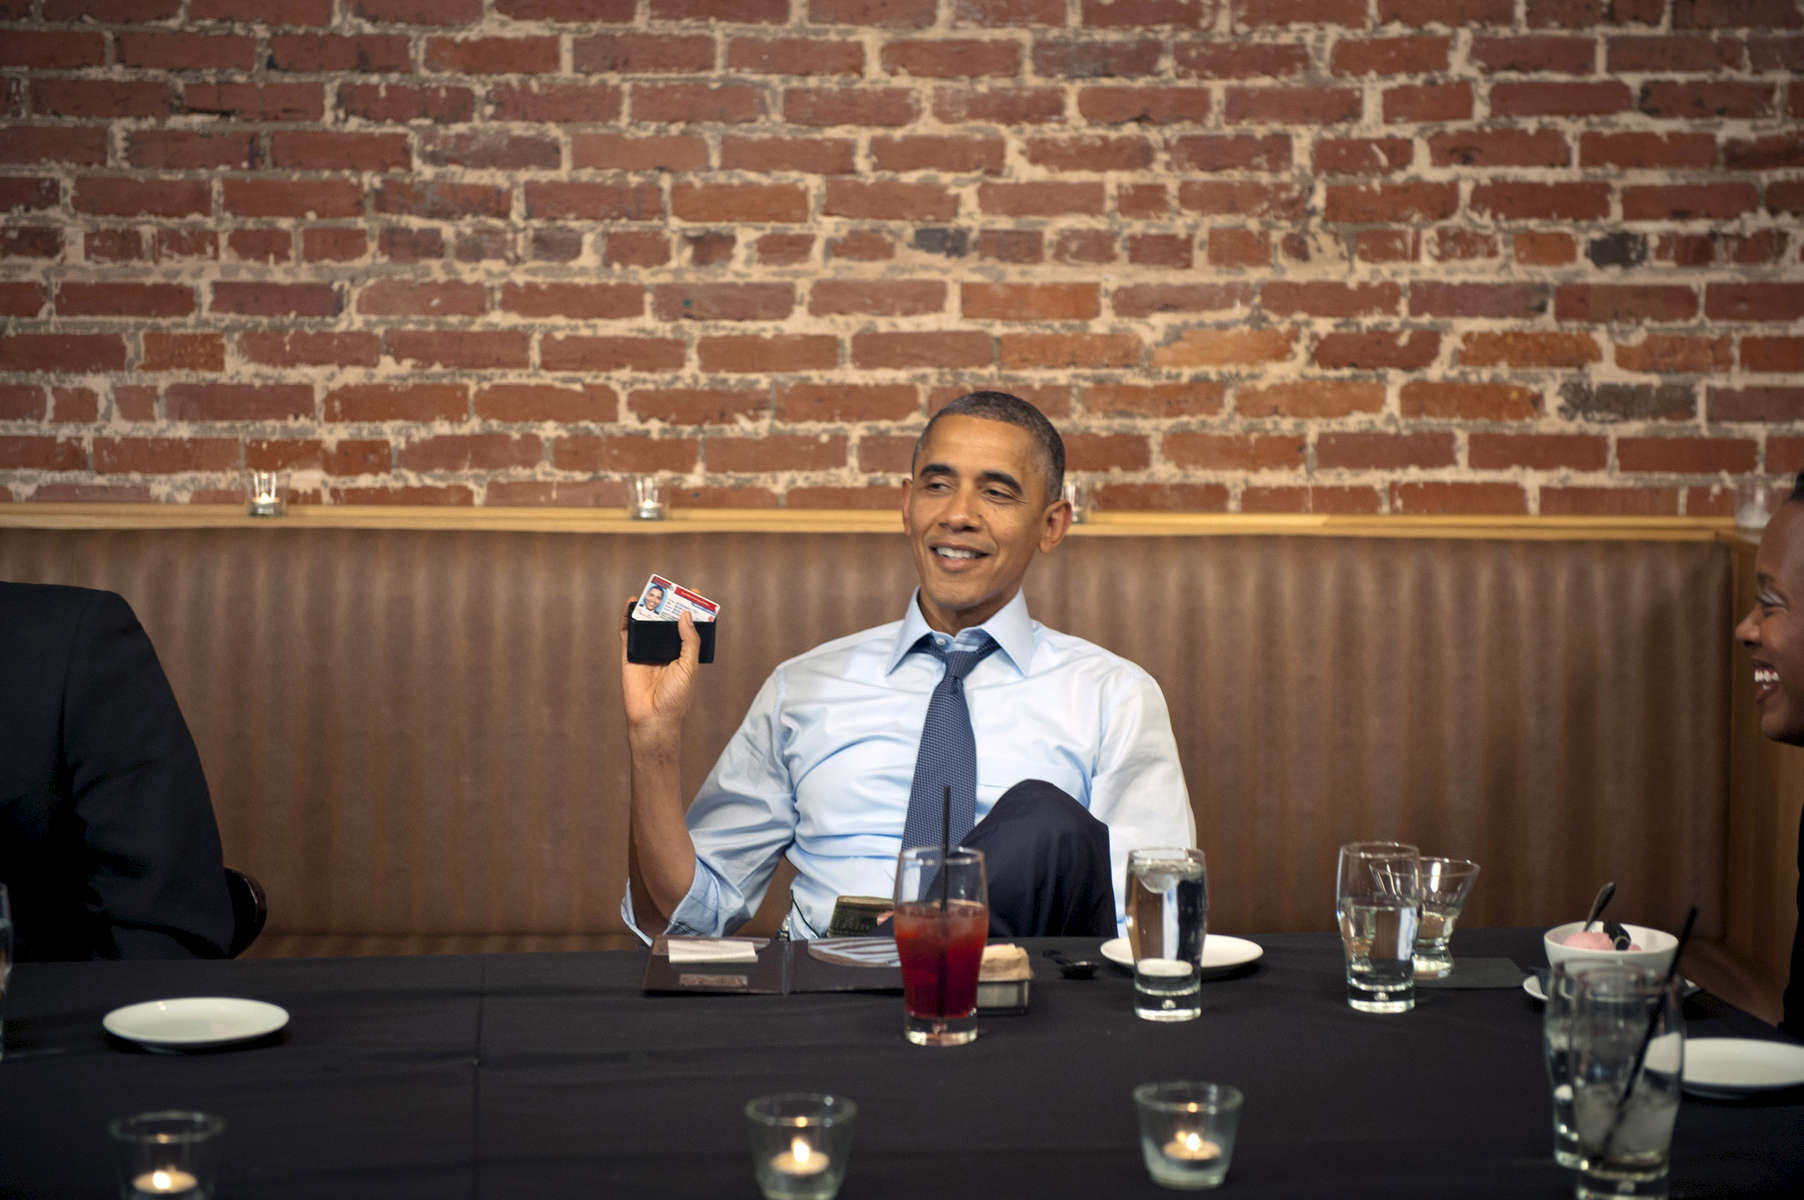 October 12, 2012 - Washington DC: President Barack Obama shows off his driver's license during a dinner at Smith Commons in Washington DC. (Scout Tufankjian for Obama for America/Polaris)